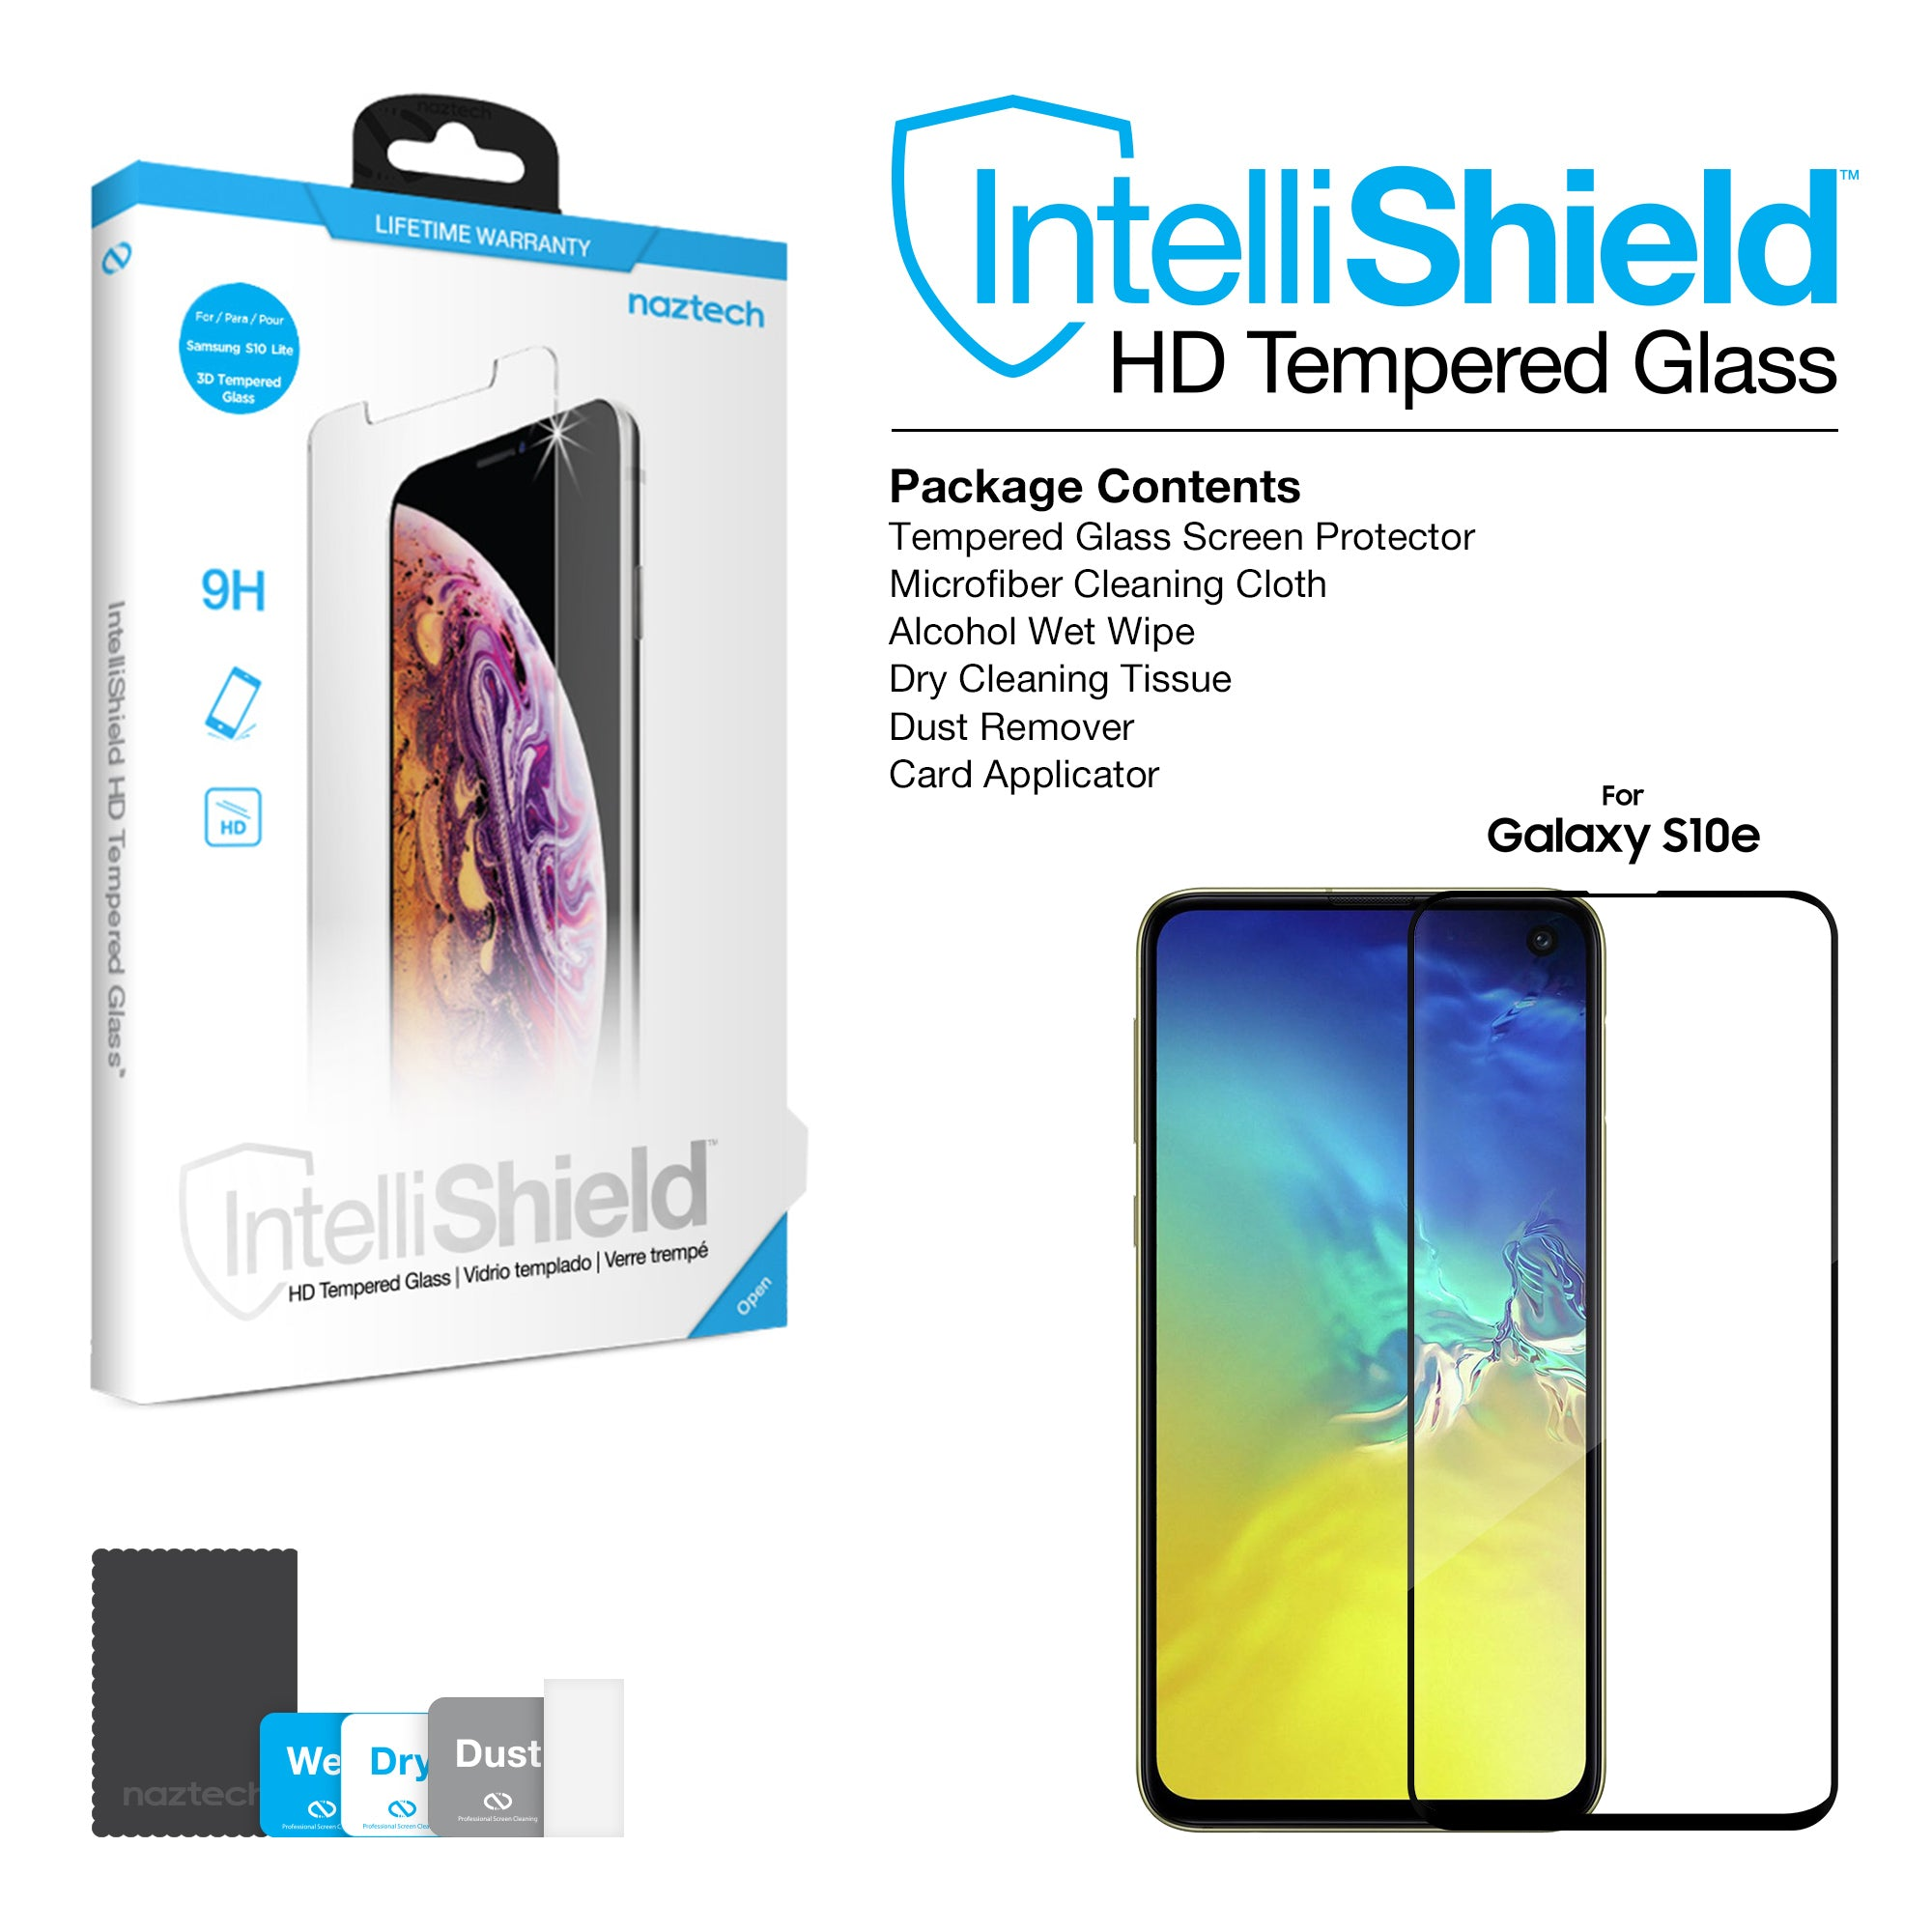 IntelliShield HD Tempered Glass for Galaxy S10e